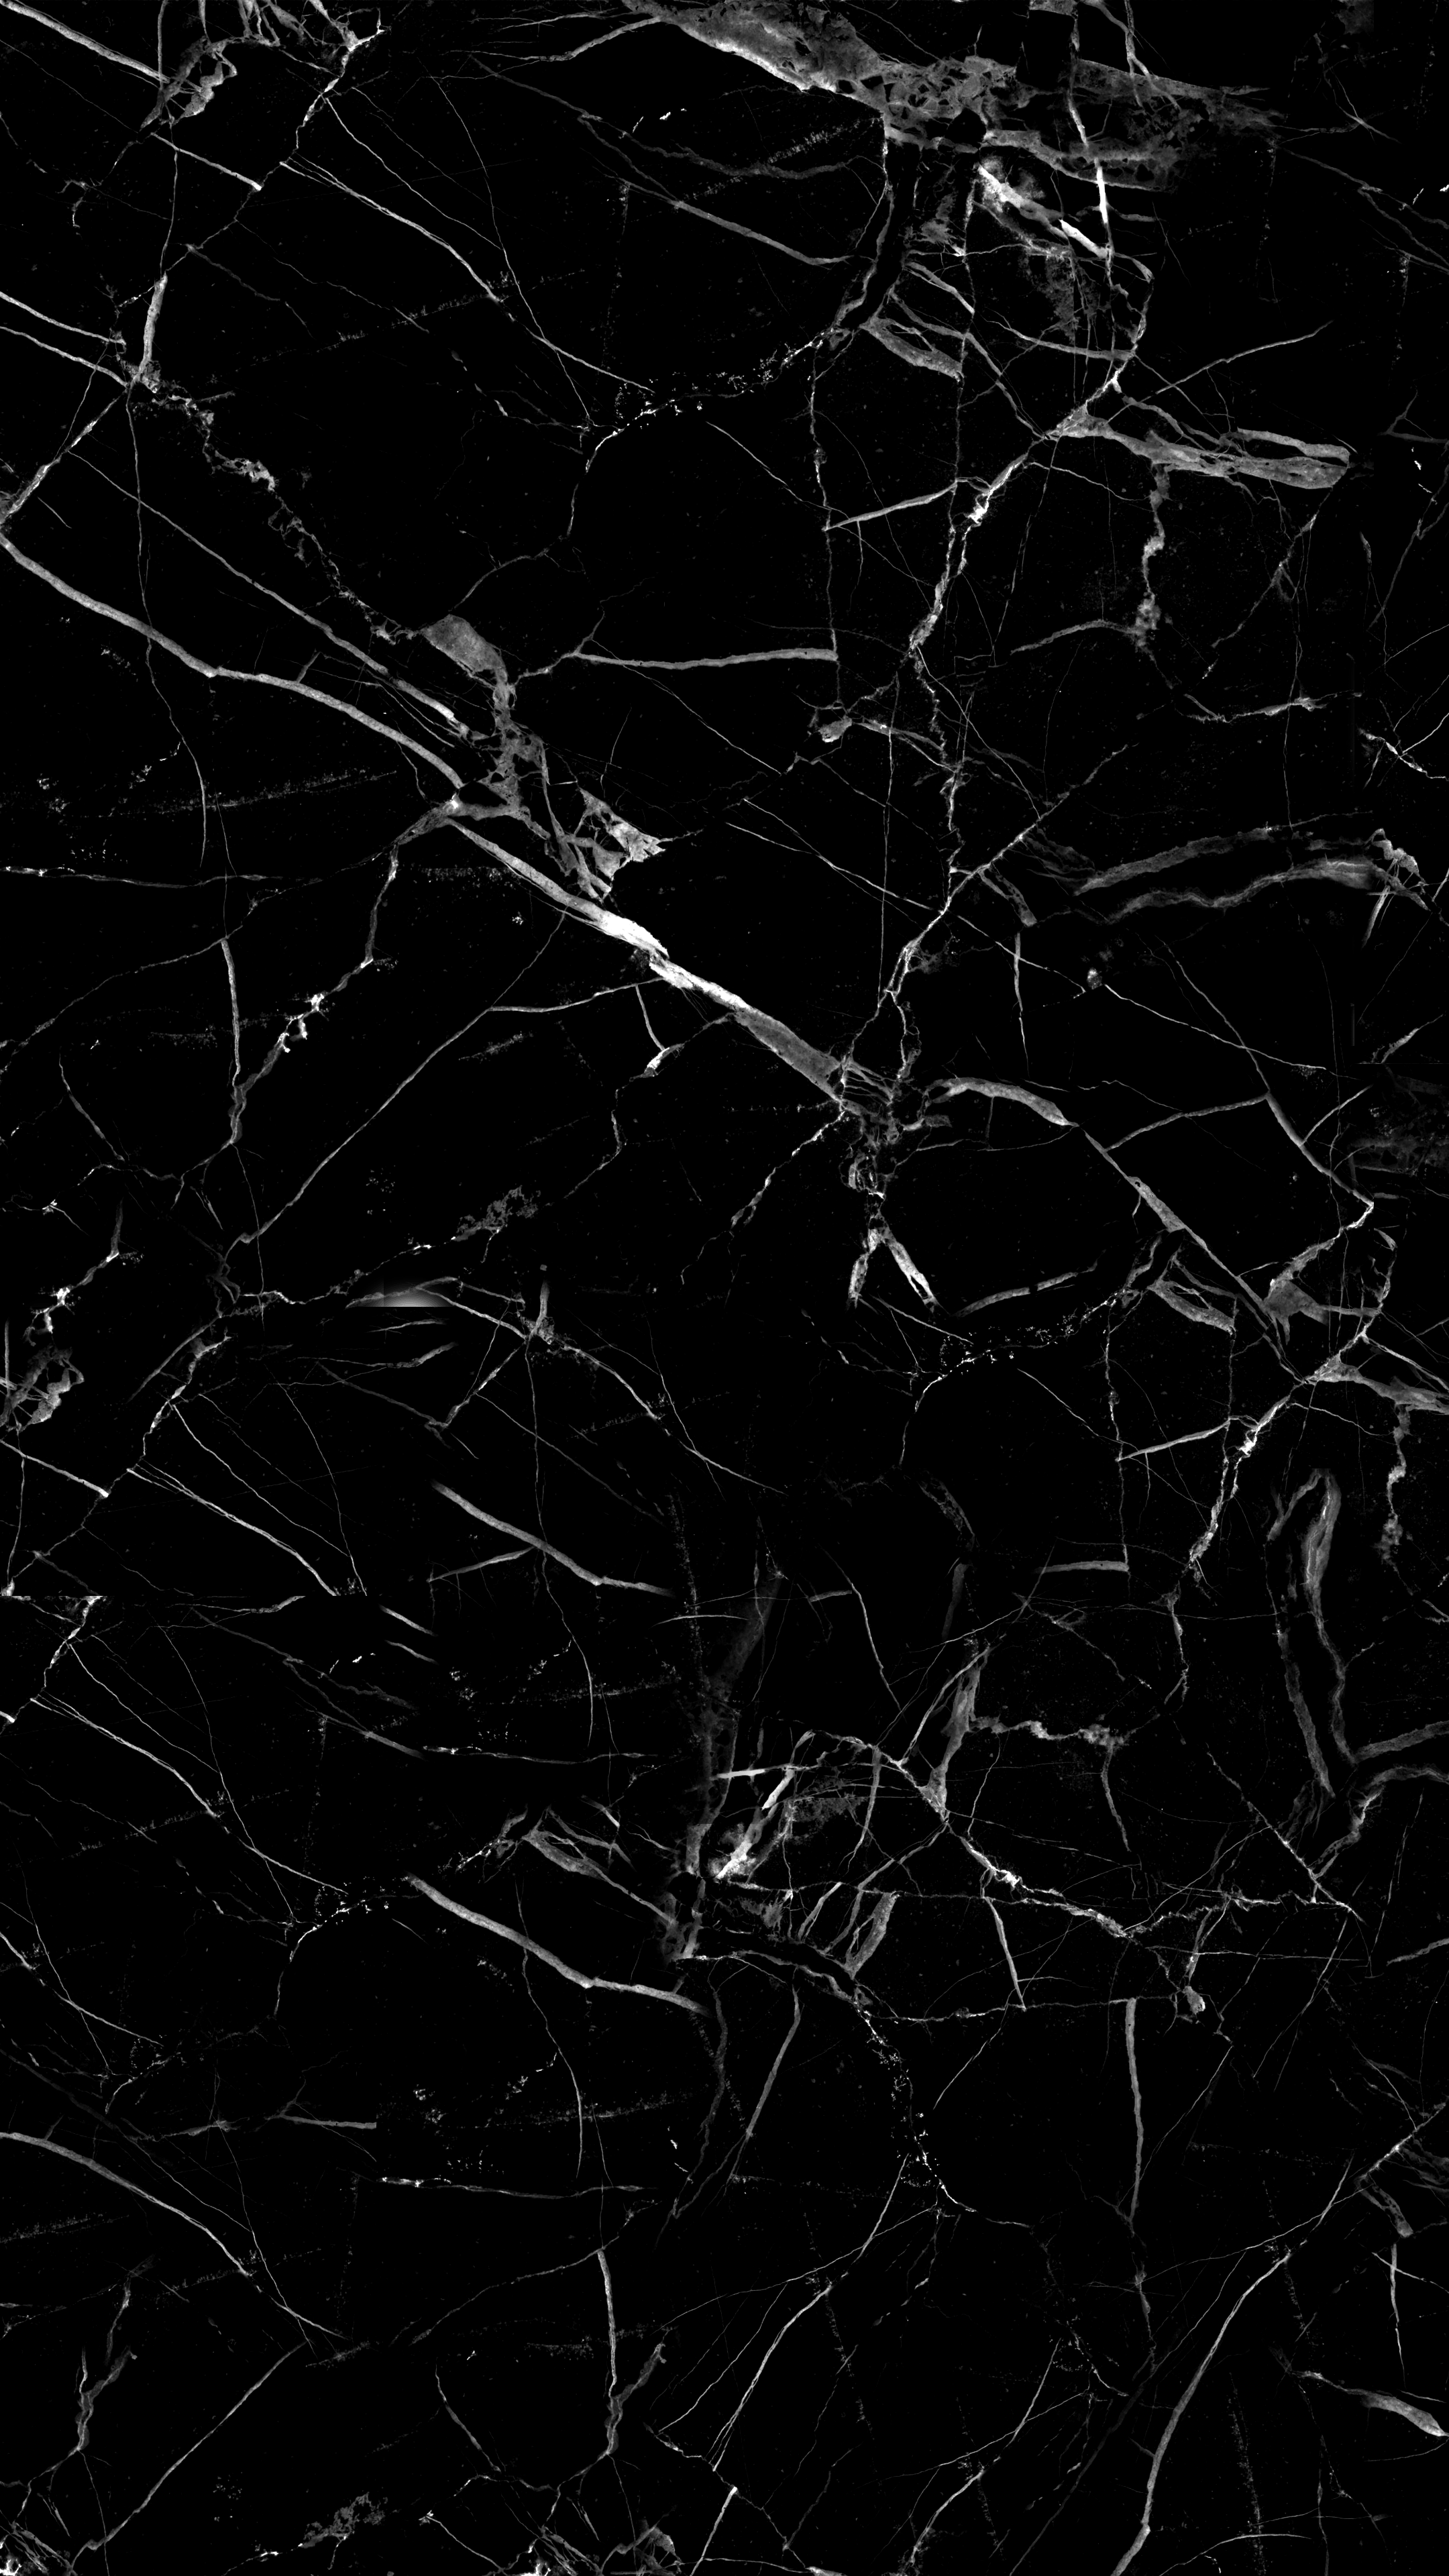 Black Marble Iphone Wallpapers Top Free Black Marble Iphone Backgrounds Wallpaperaccess